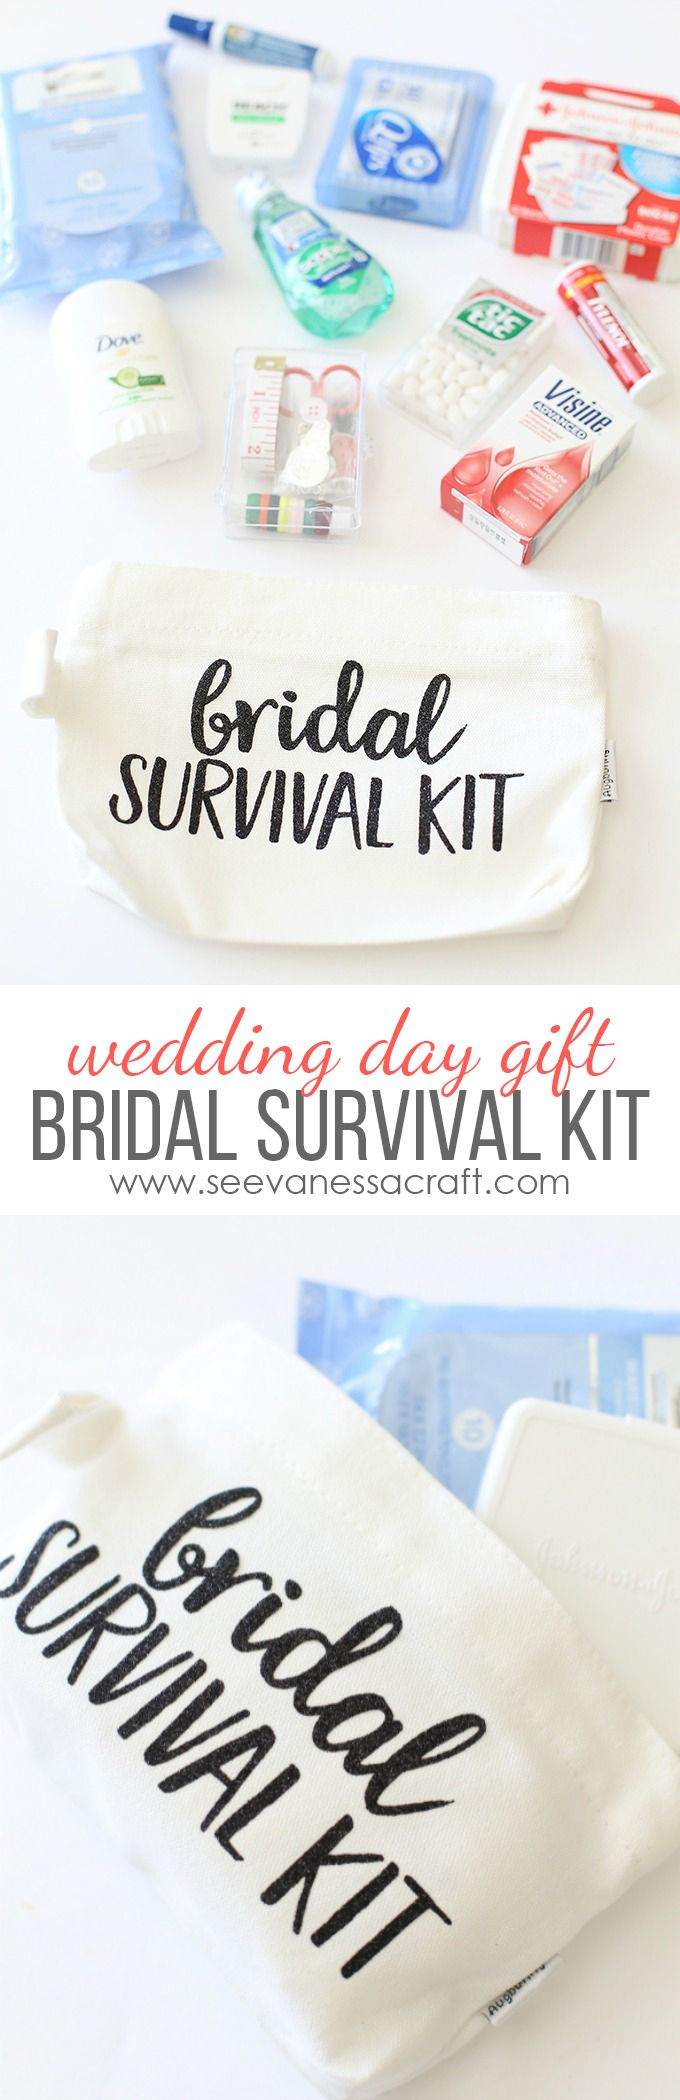 Bridal Survival Kit Filled With Wedding Day Essentials That The Bride Will Need On Her